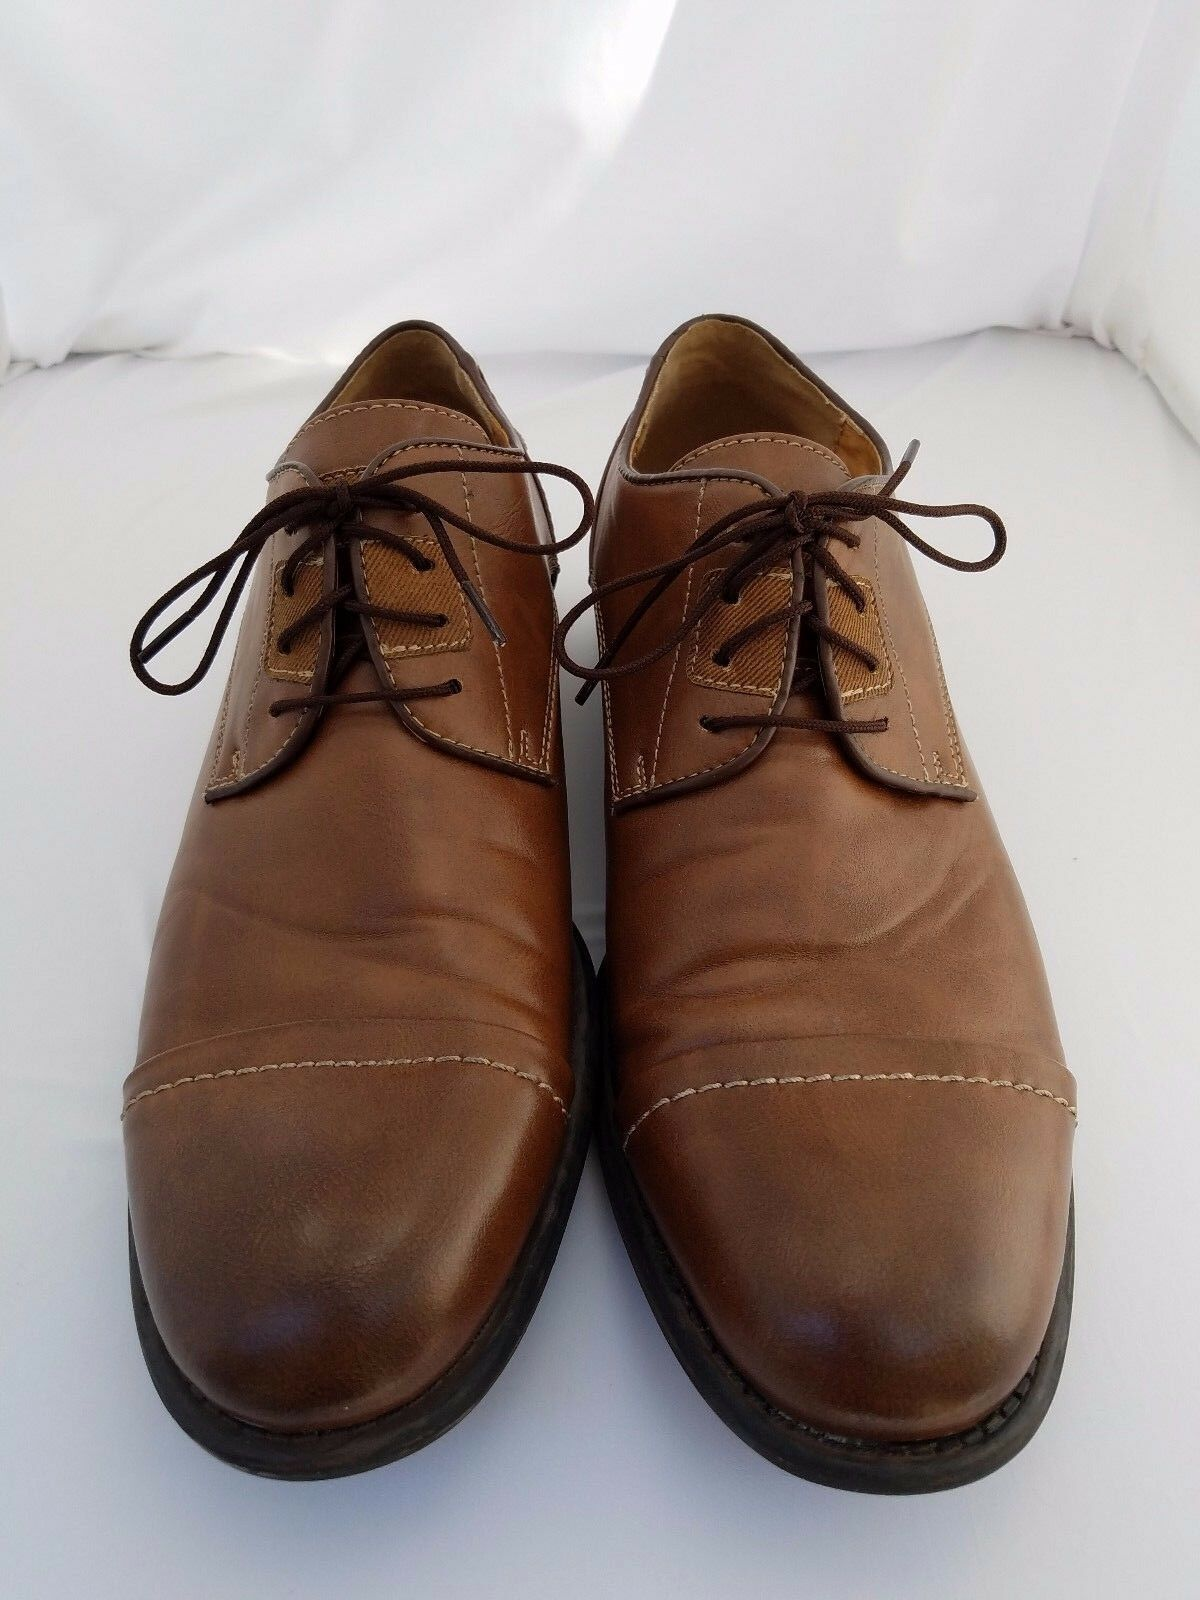 Guess Men's Brown Cap Toe Oxford Dress shoes Size 8M 1  Heel Make me an Offer